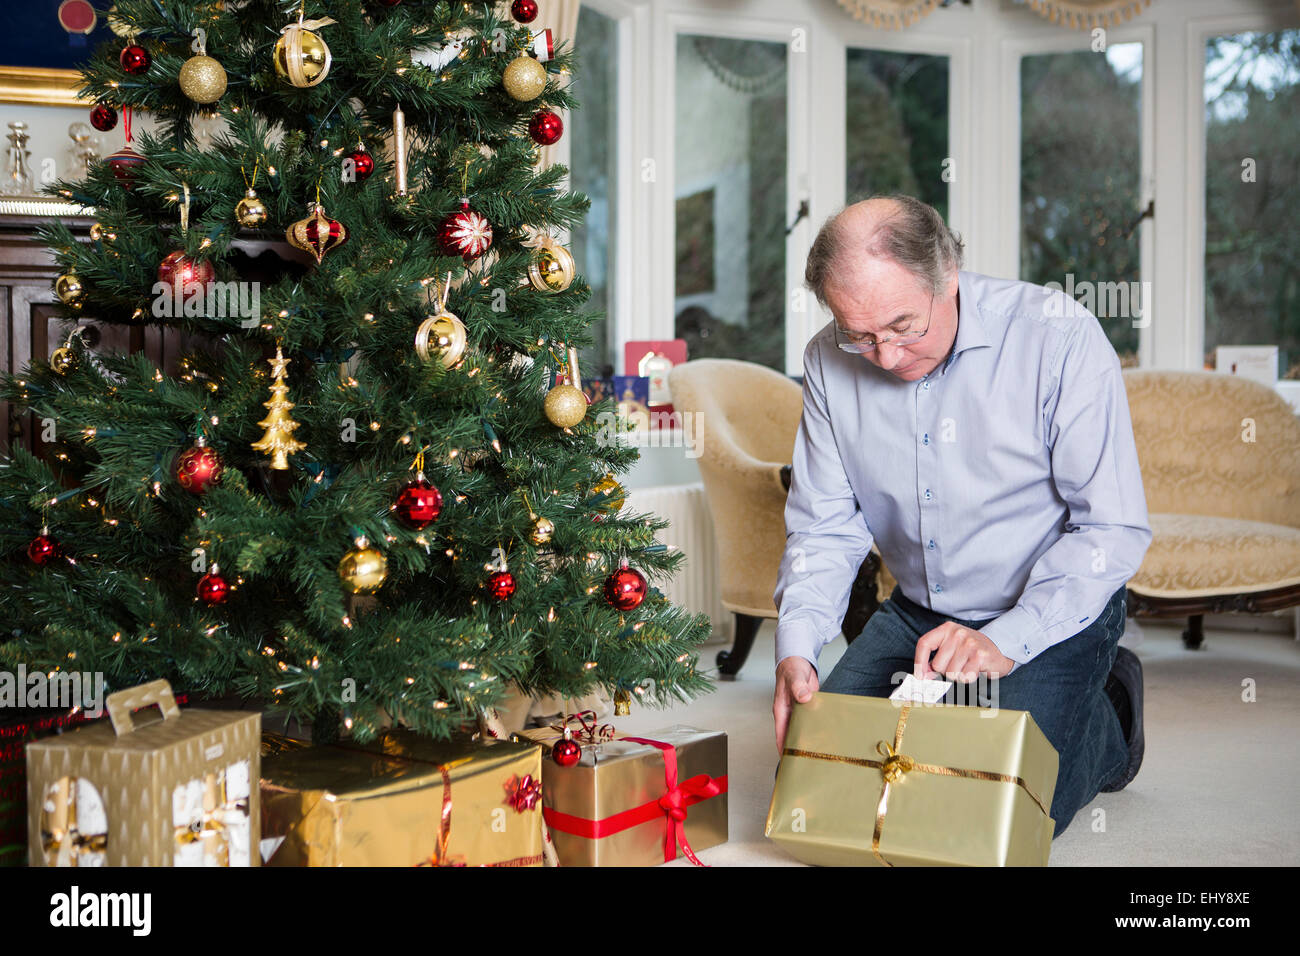 Senior man looking at gift parcel by Christmas tree - Stock Image